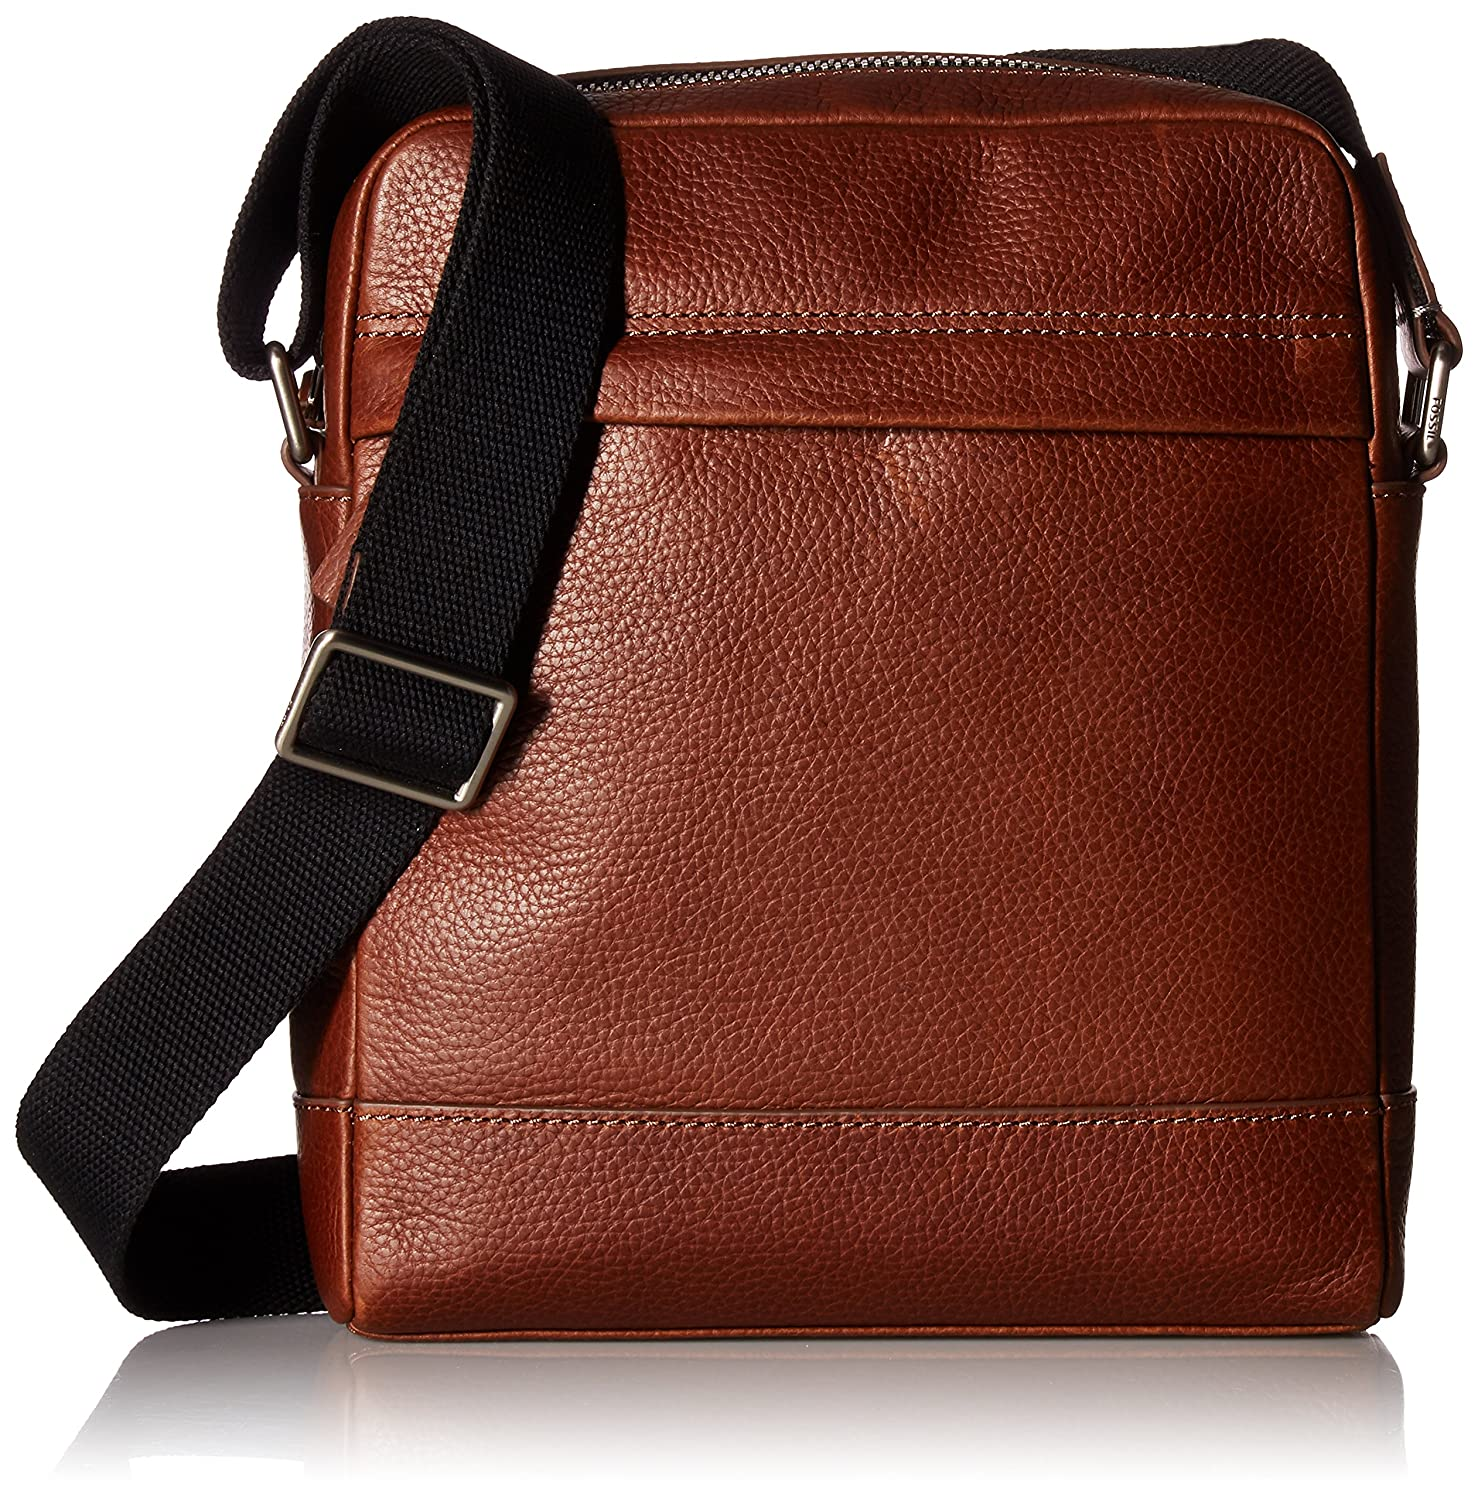 Fossil Mayfair Ns City Bag-Cognac